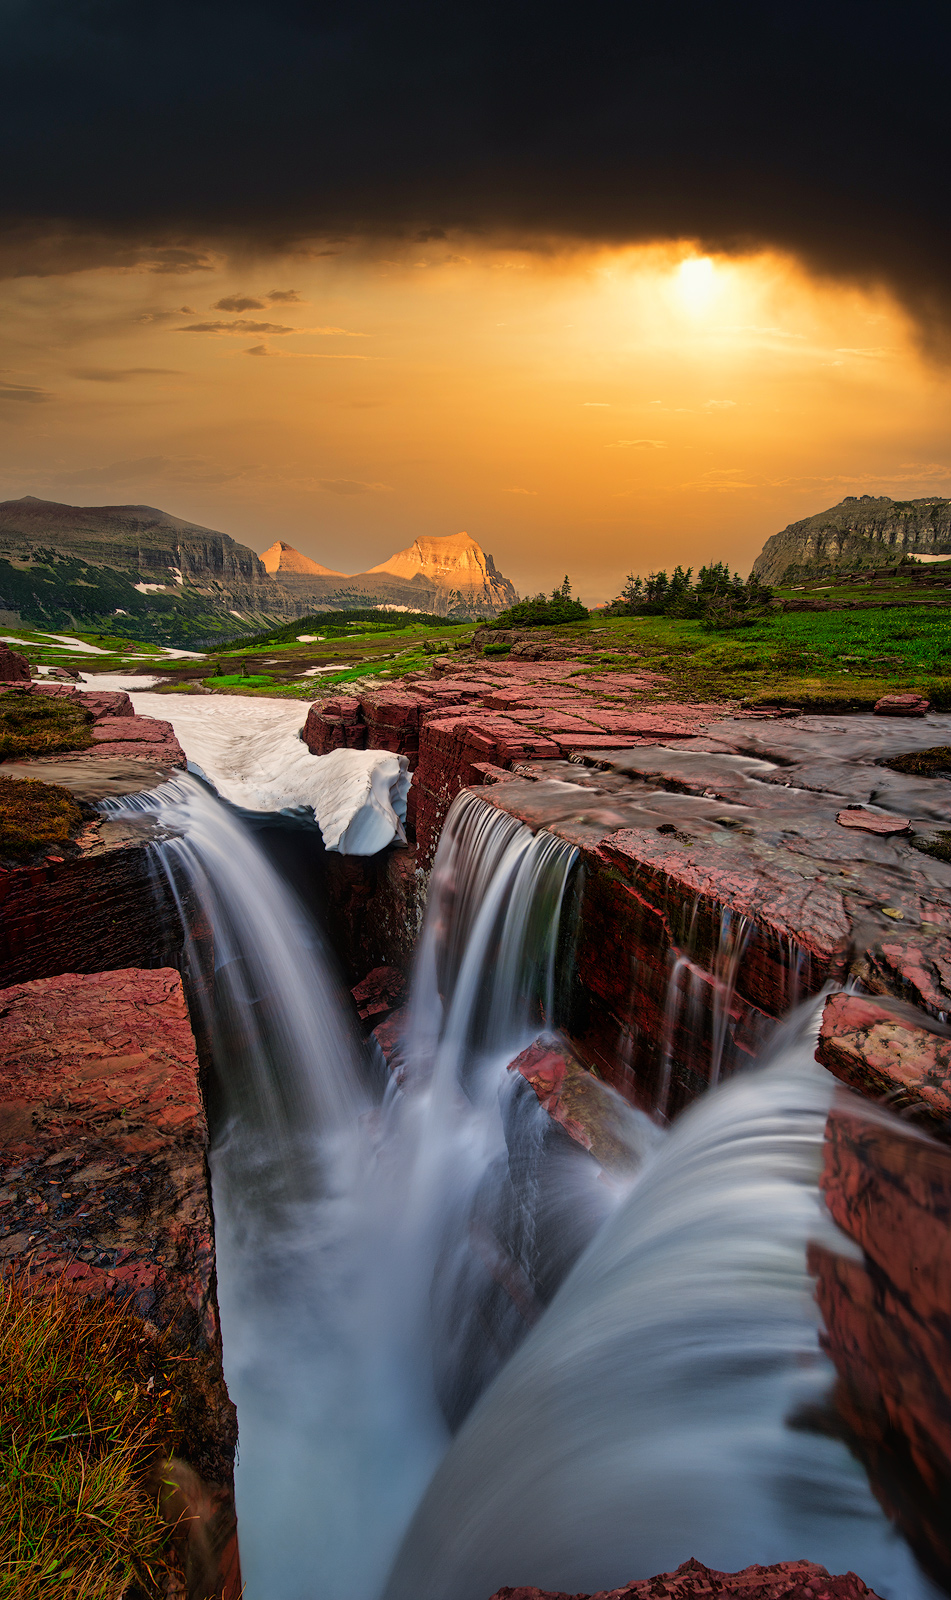 Glacier National Park, Montana, Bernard Chen, Horizontal, Outdoors, Day, Nature, Tranquility, Scenics, Tranquil Scene, Beauty In Nature, Non Urban Scene, Environment, Standing, photo